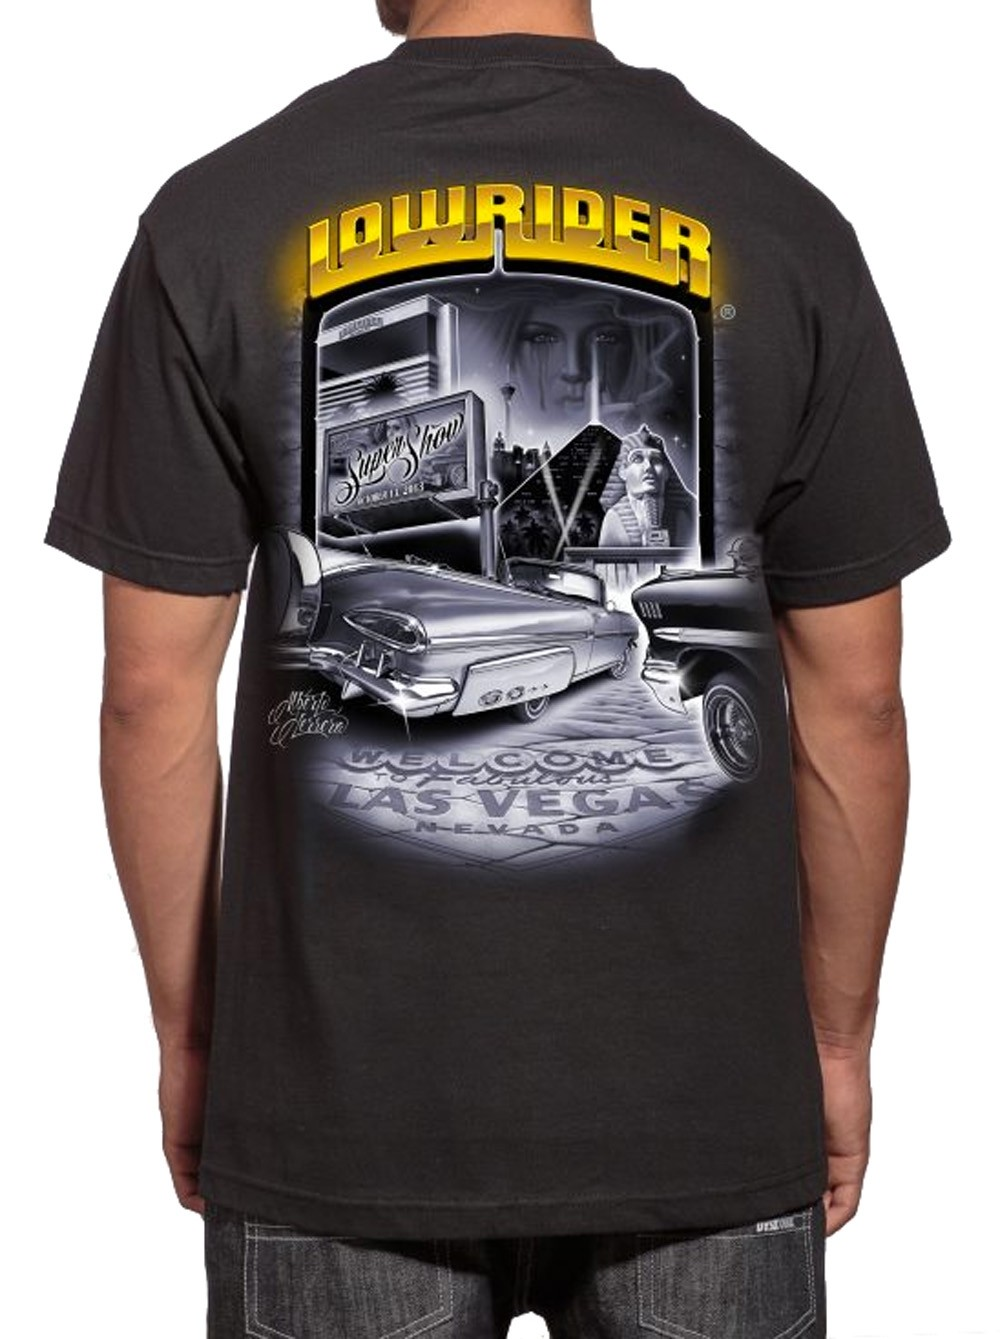 Lowrider Clothing - Supershow 2013 T-Shirt